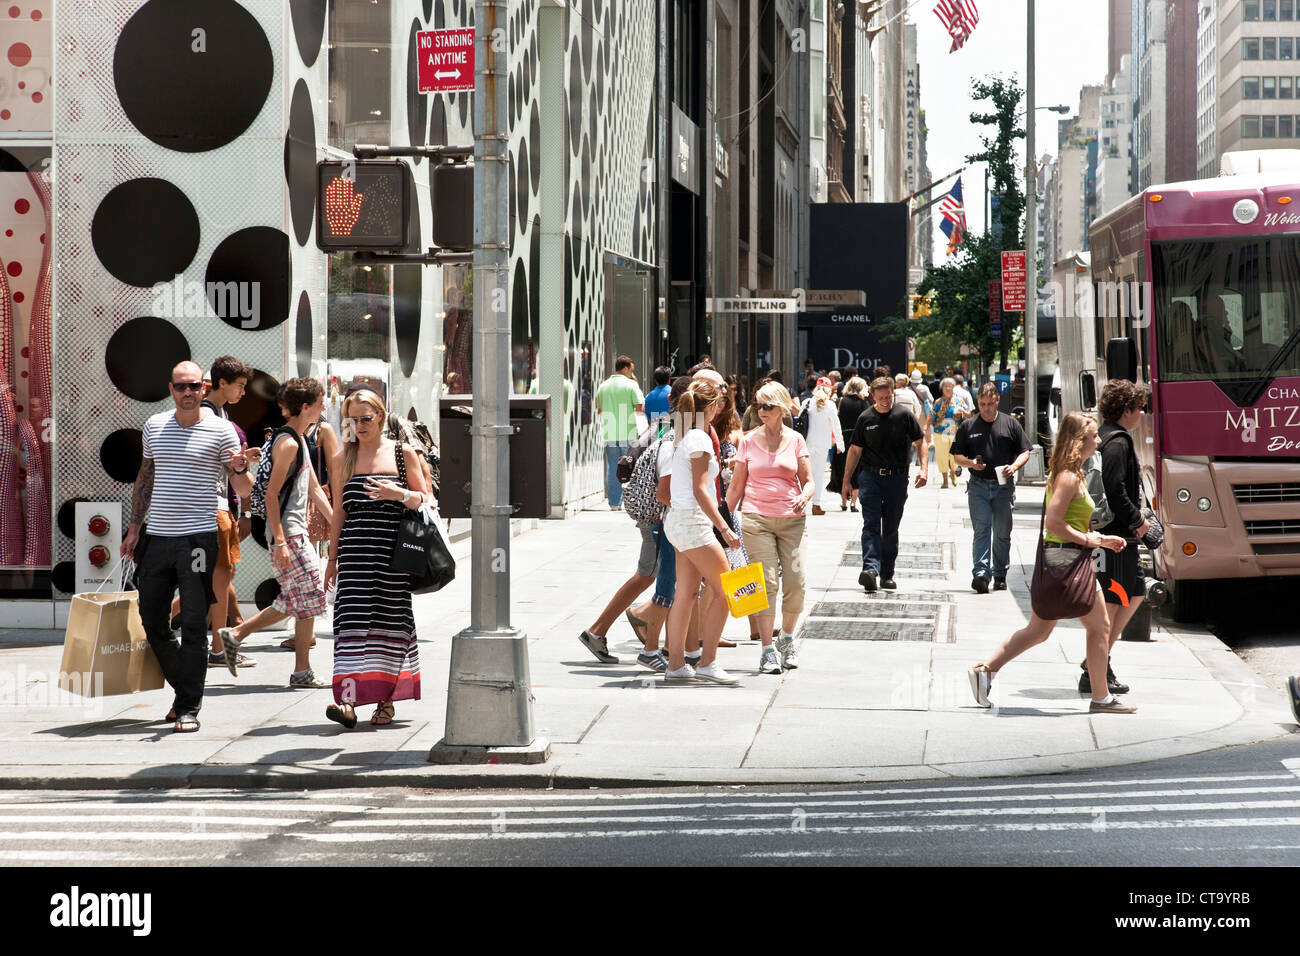 shoppers & pedestrians crowd corner of 5th Avenue & 57th street on hot summer day in midtown Manhattan New - Stock Image